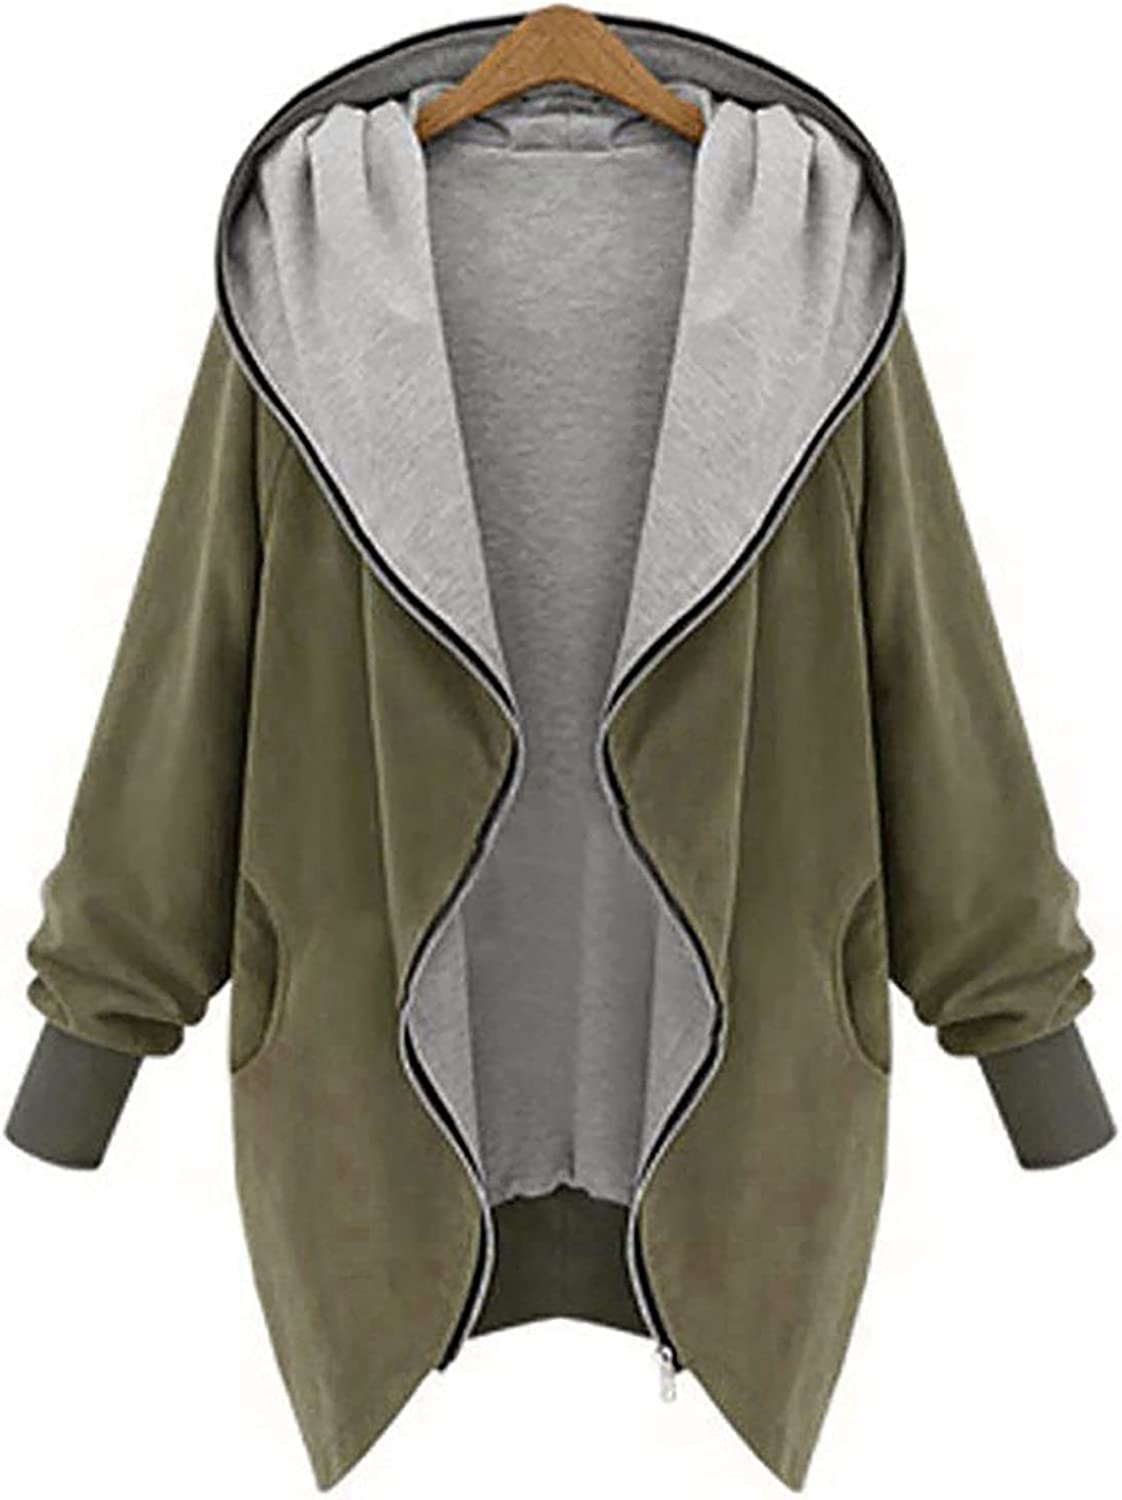 VonVonCo Womens Plus Size Tops Winter Plus Size Long Sleeve Wear A Hat Cardigan Sweater Casual Jacket Coat